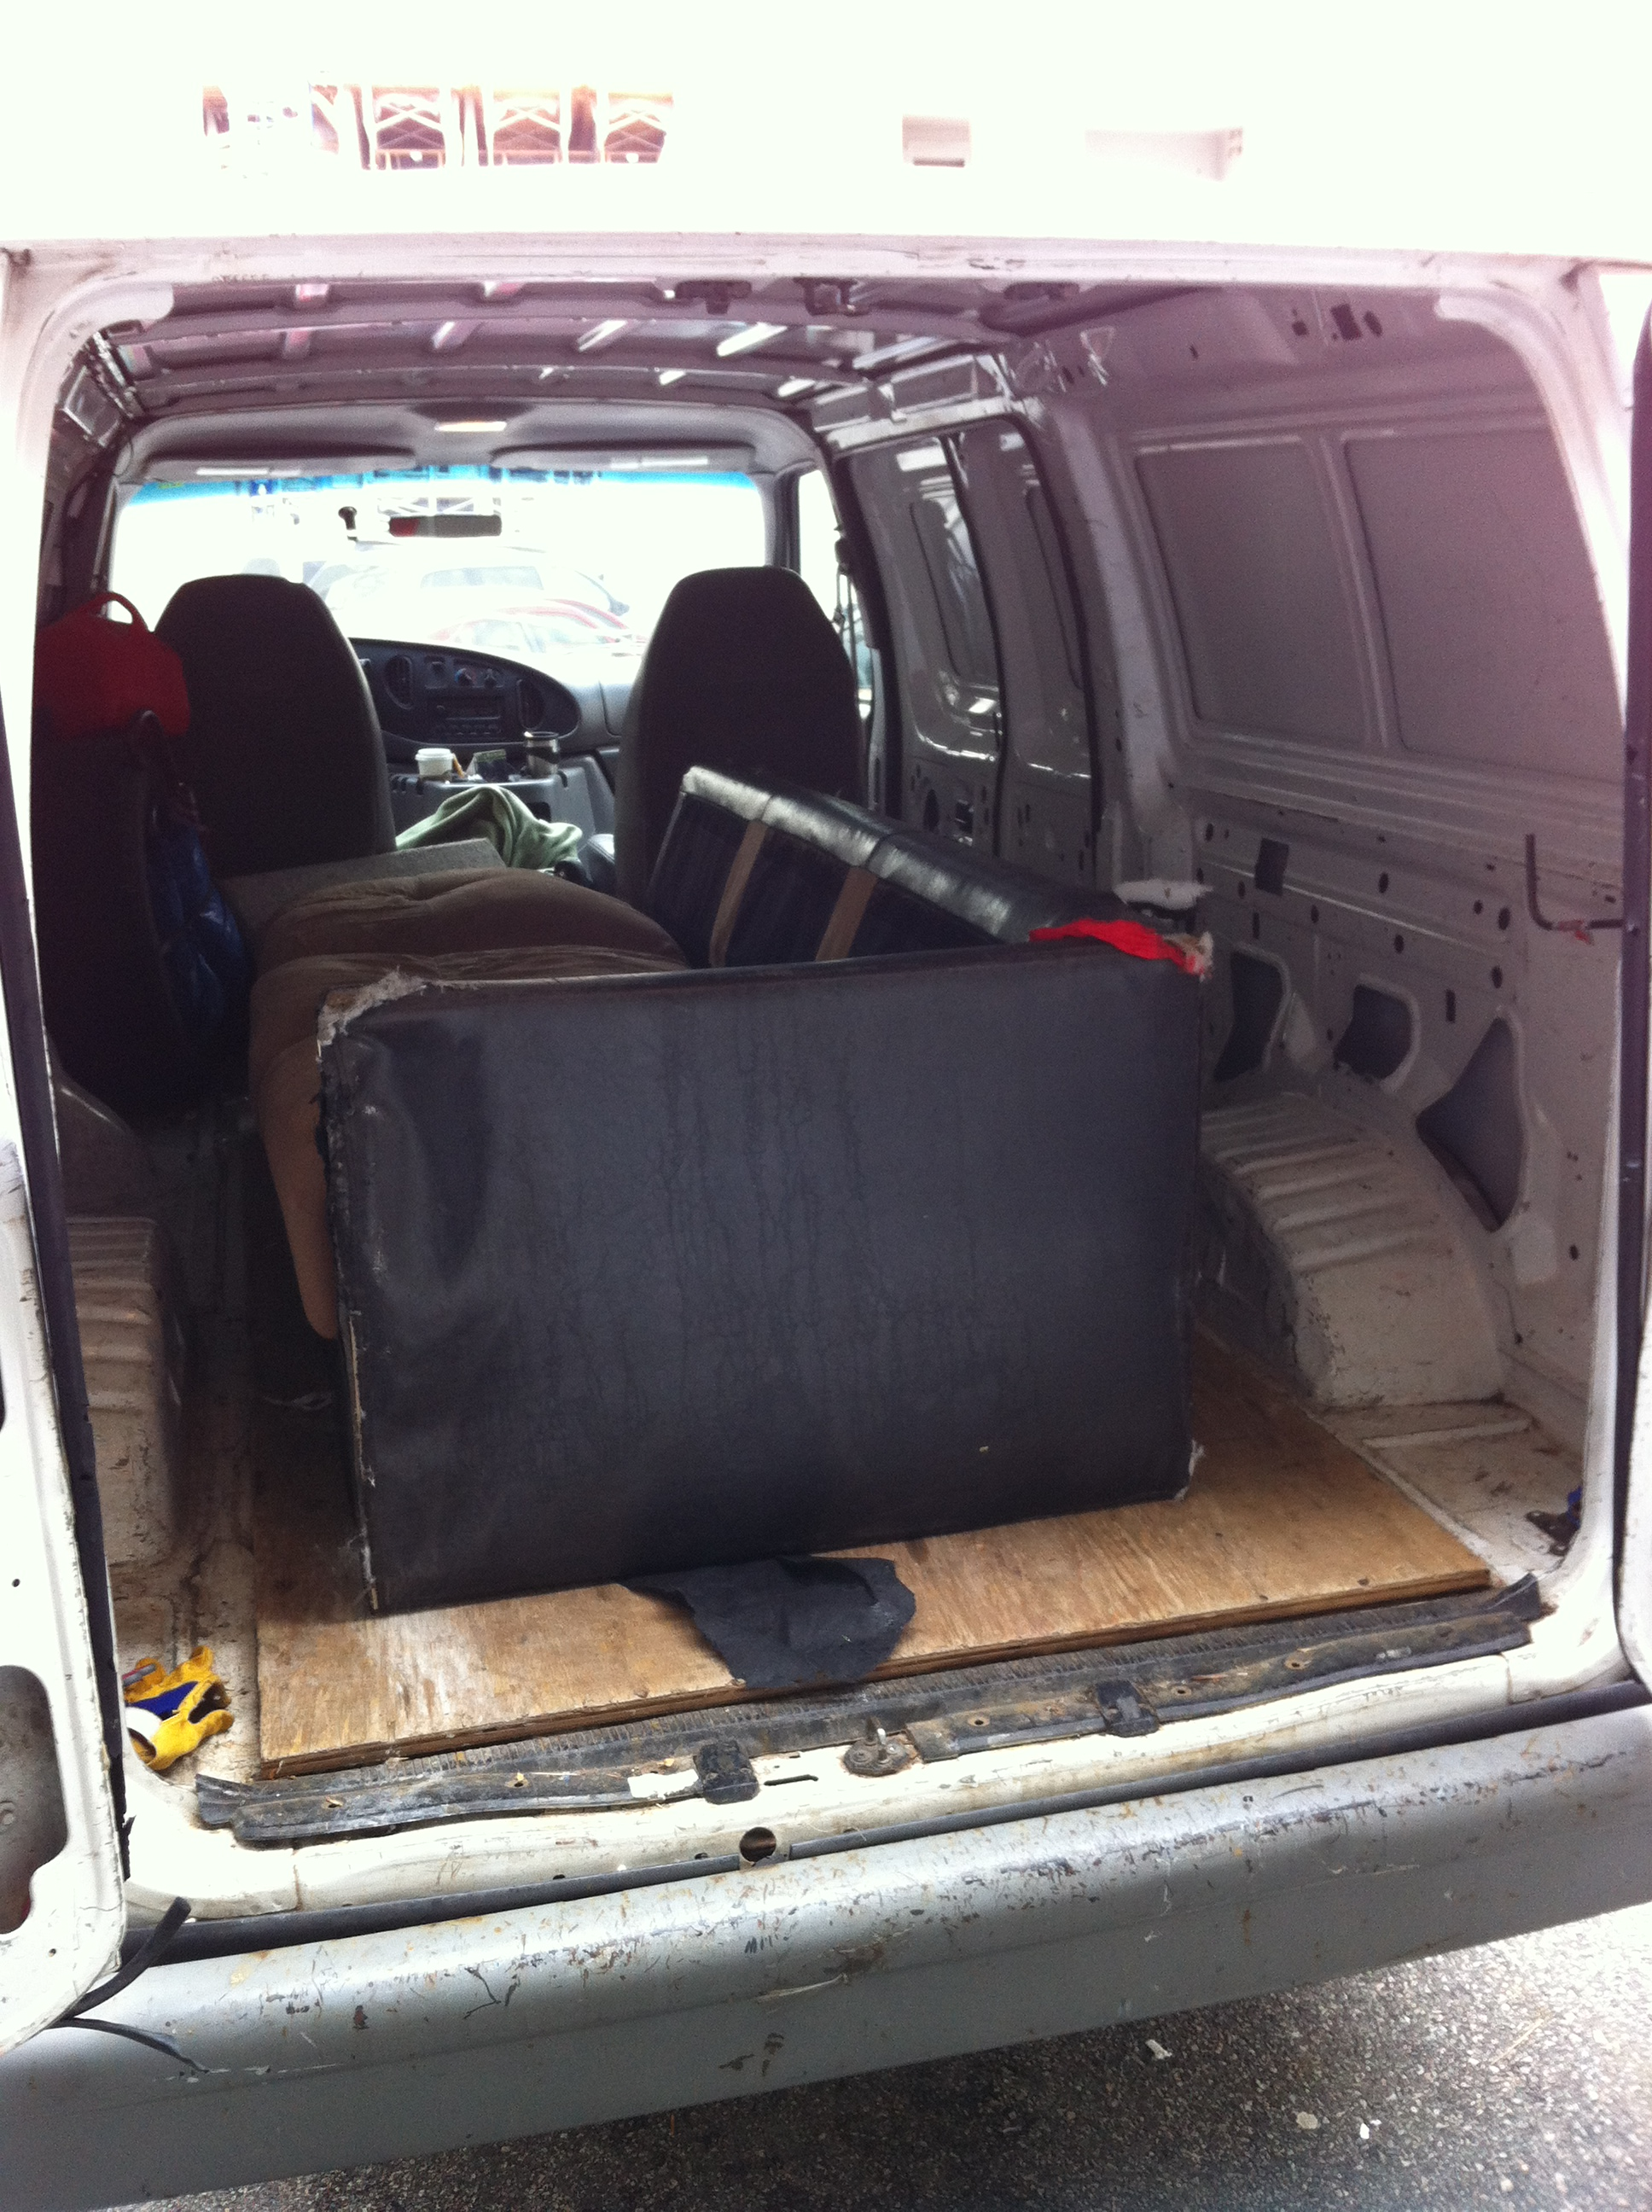 how to get rid of furniture in vancouver